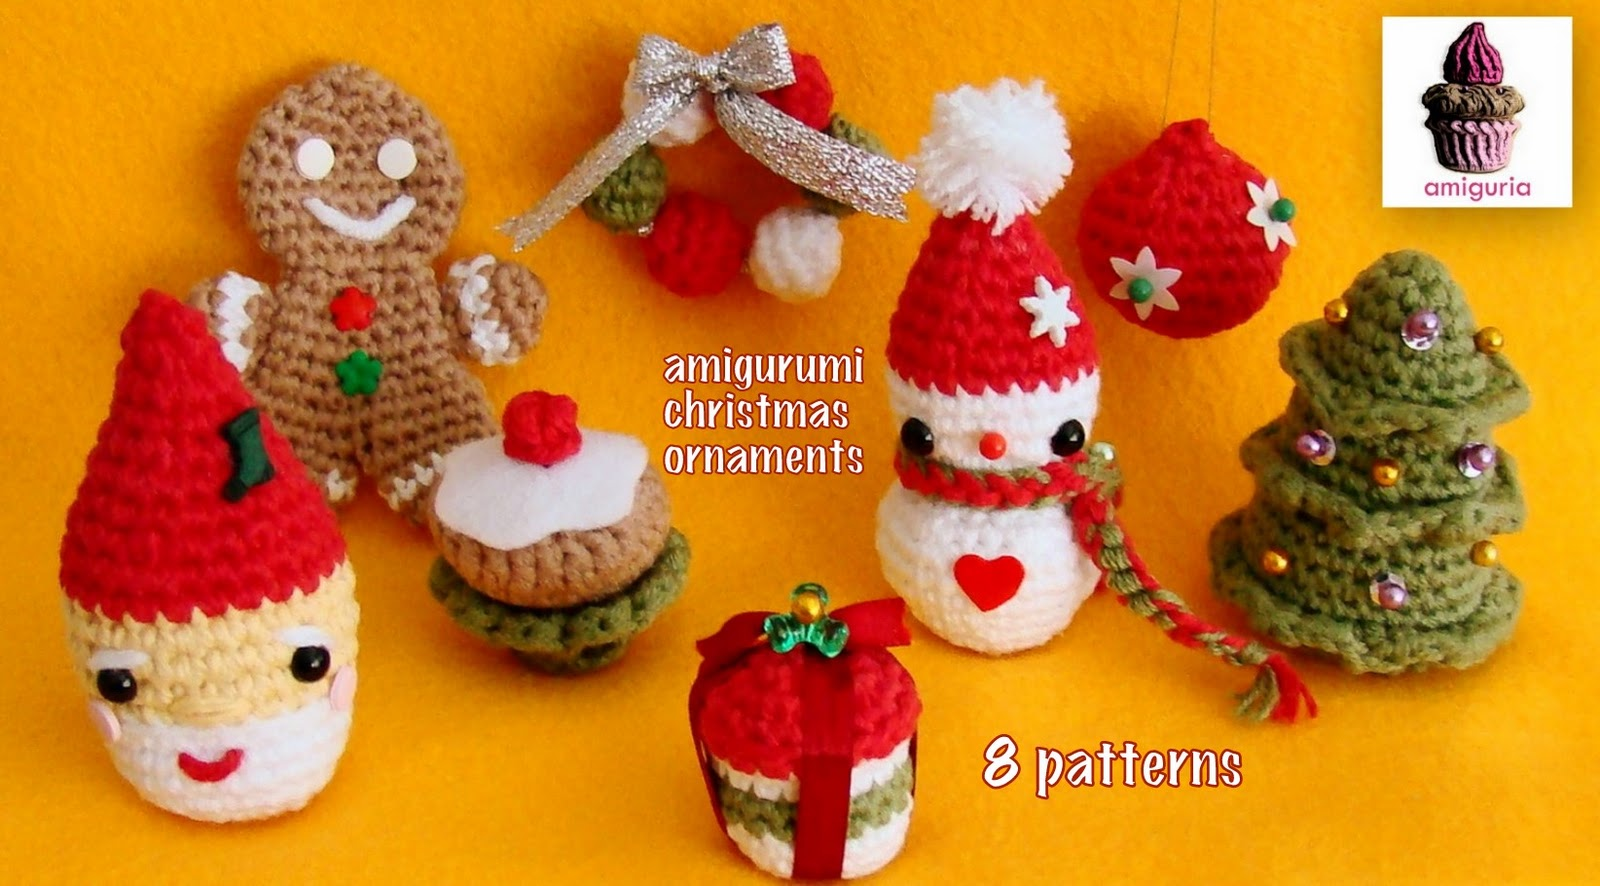 Crochet Patterns Xmas : xmas patterns for more amigurumi xmas ornaments visit my etsy store ...